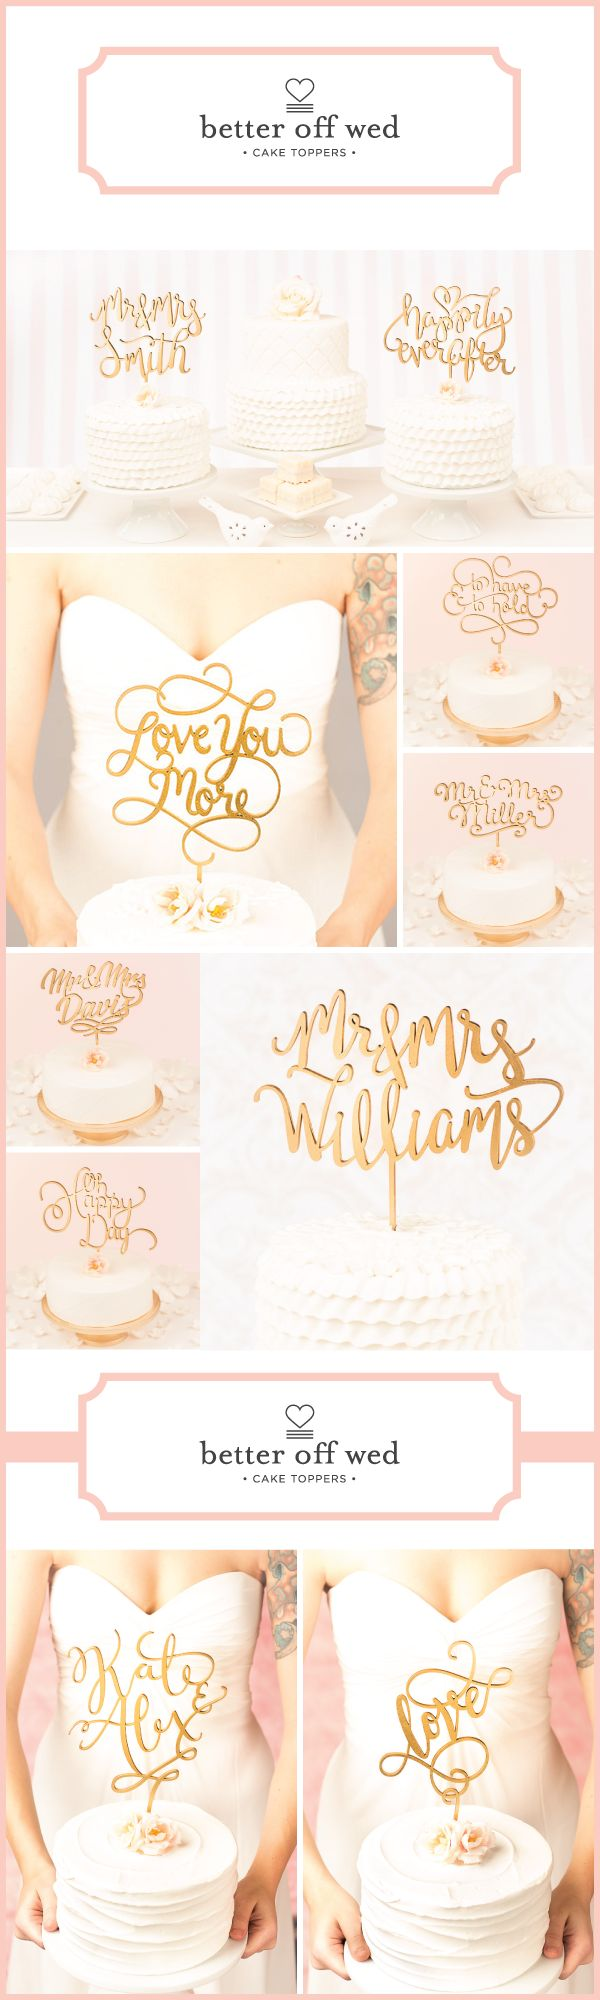 Over a hundred hand lettered, handmade cake toppers from @betteroffwed you won't find anywhere else. Find your perfect one at www.betteroffwed.co